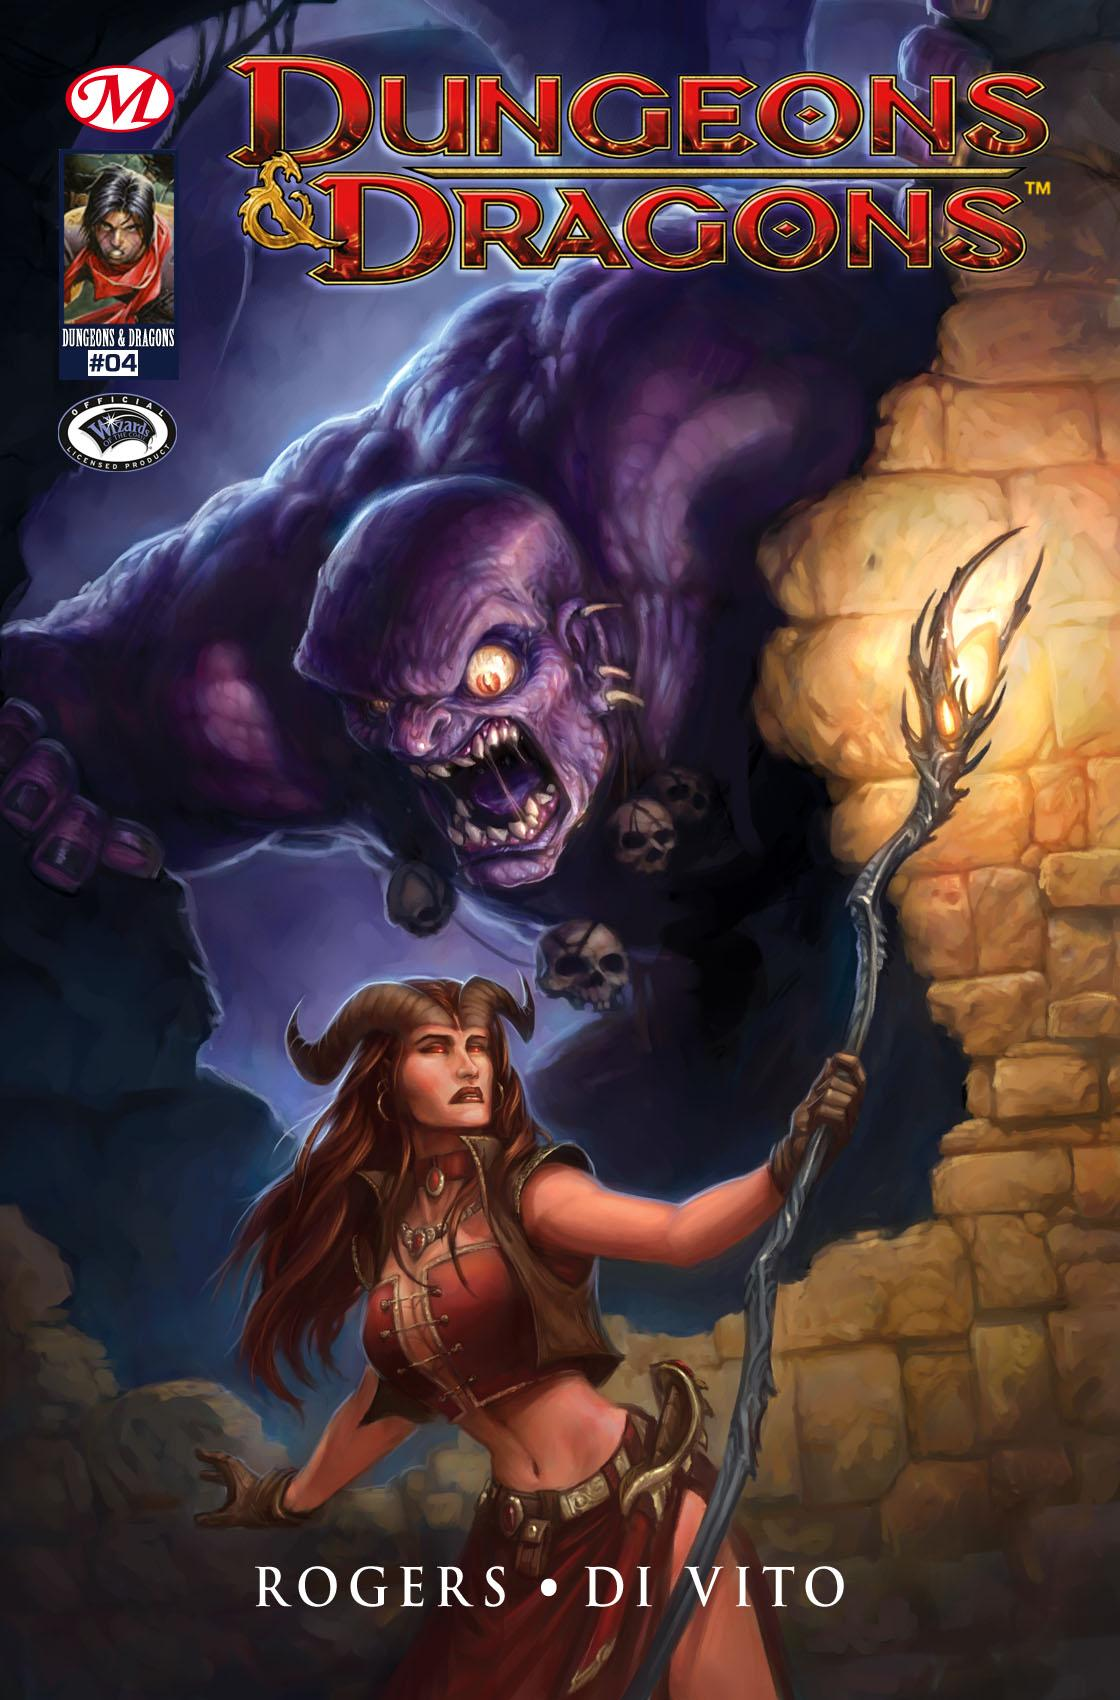 Dungeons & Dragons #4, DUNGEONS & DRAGONS, T1